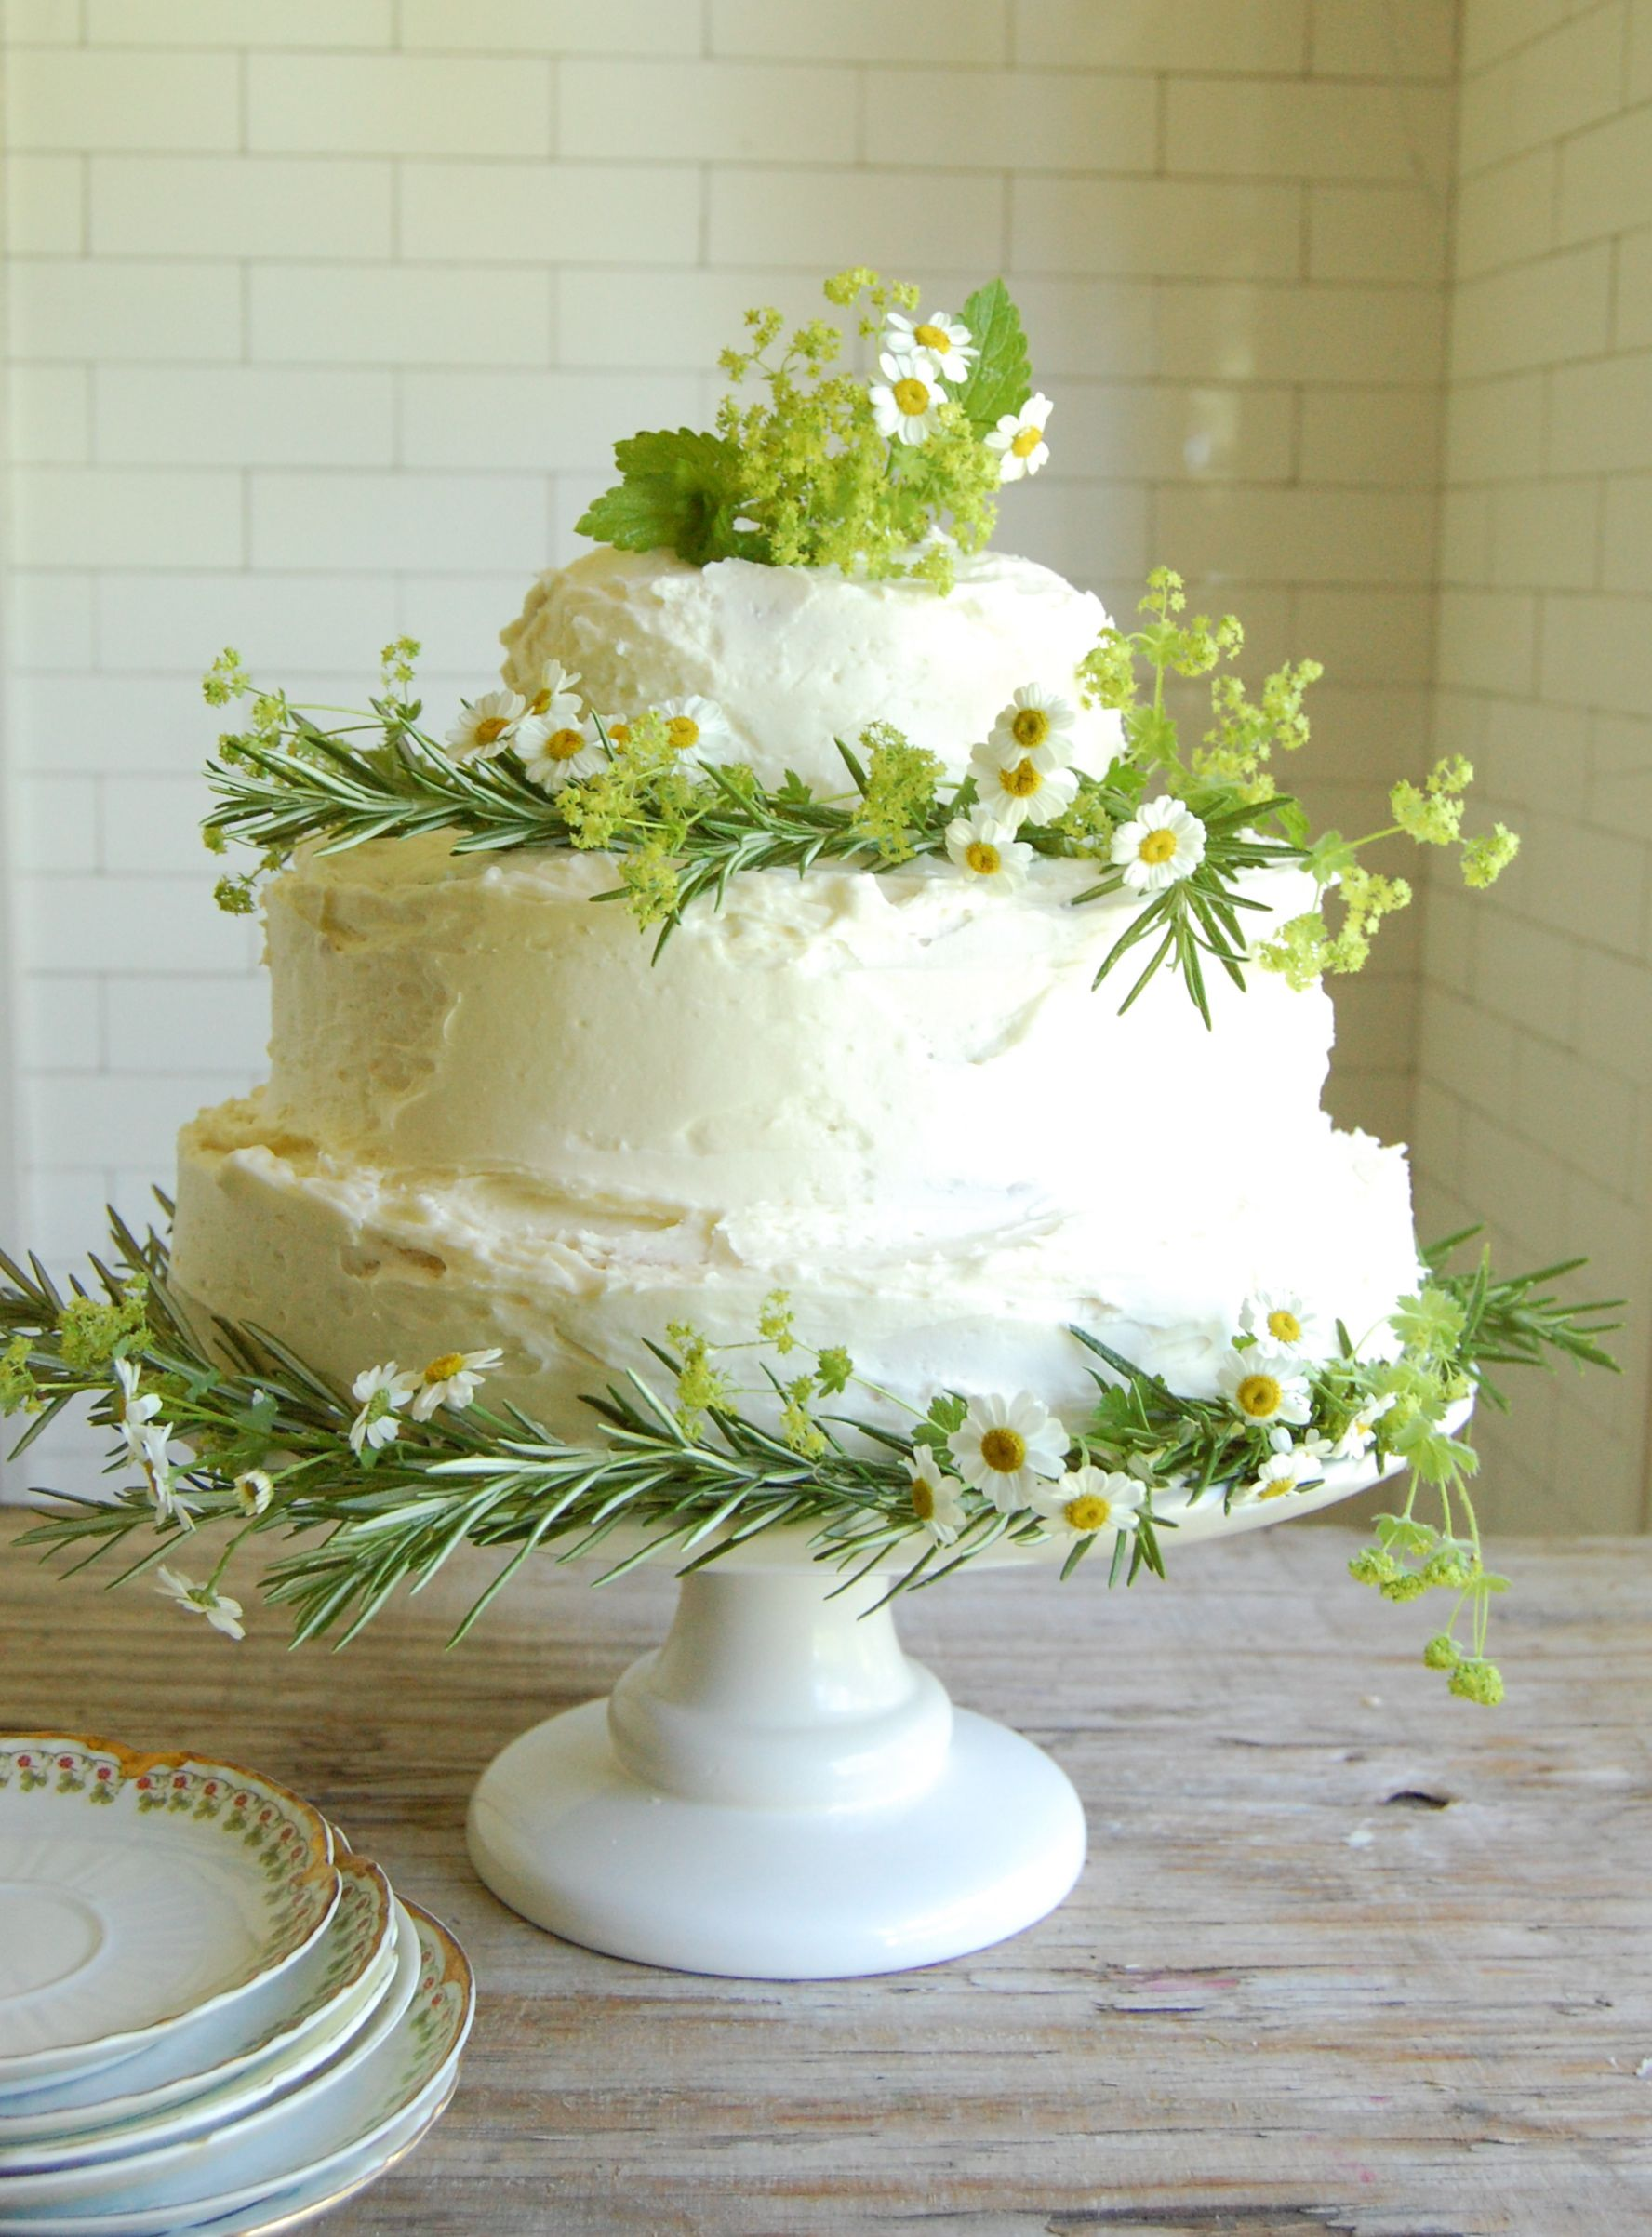 homemade wedding cakes pictures wedding cakes can be beautiful and you can make 15296